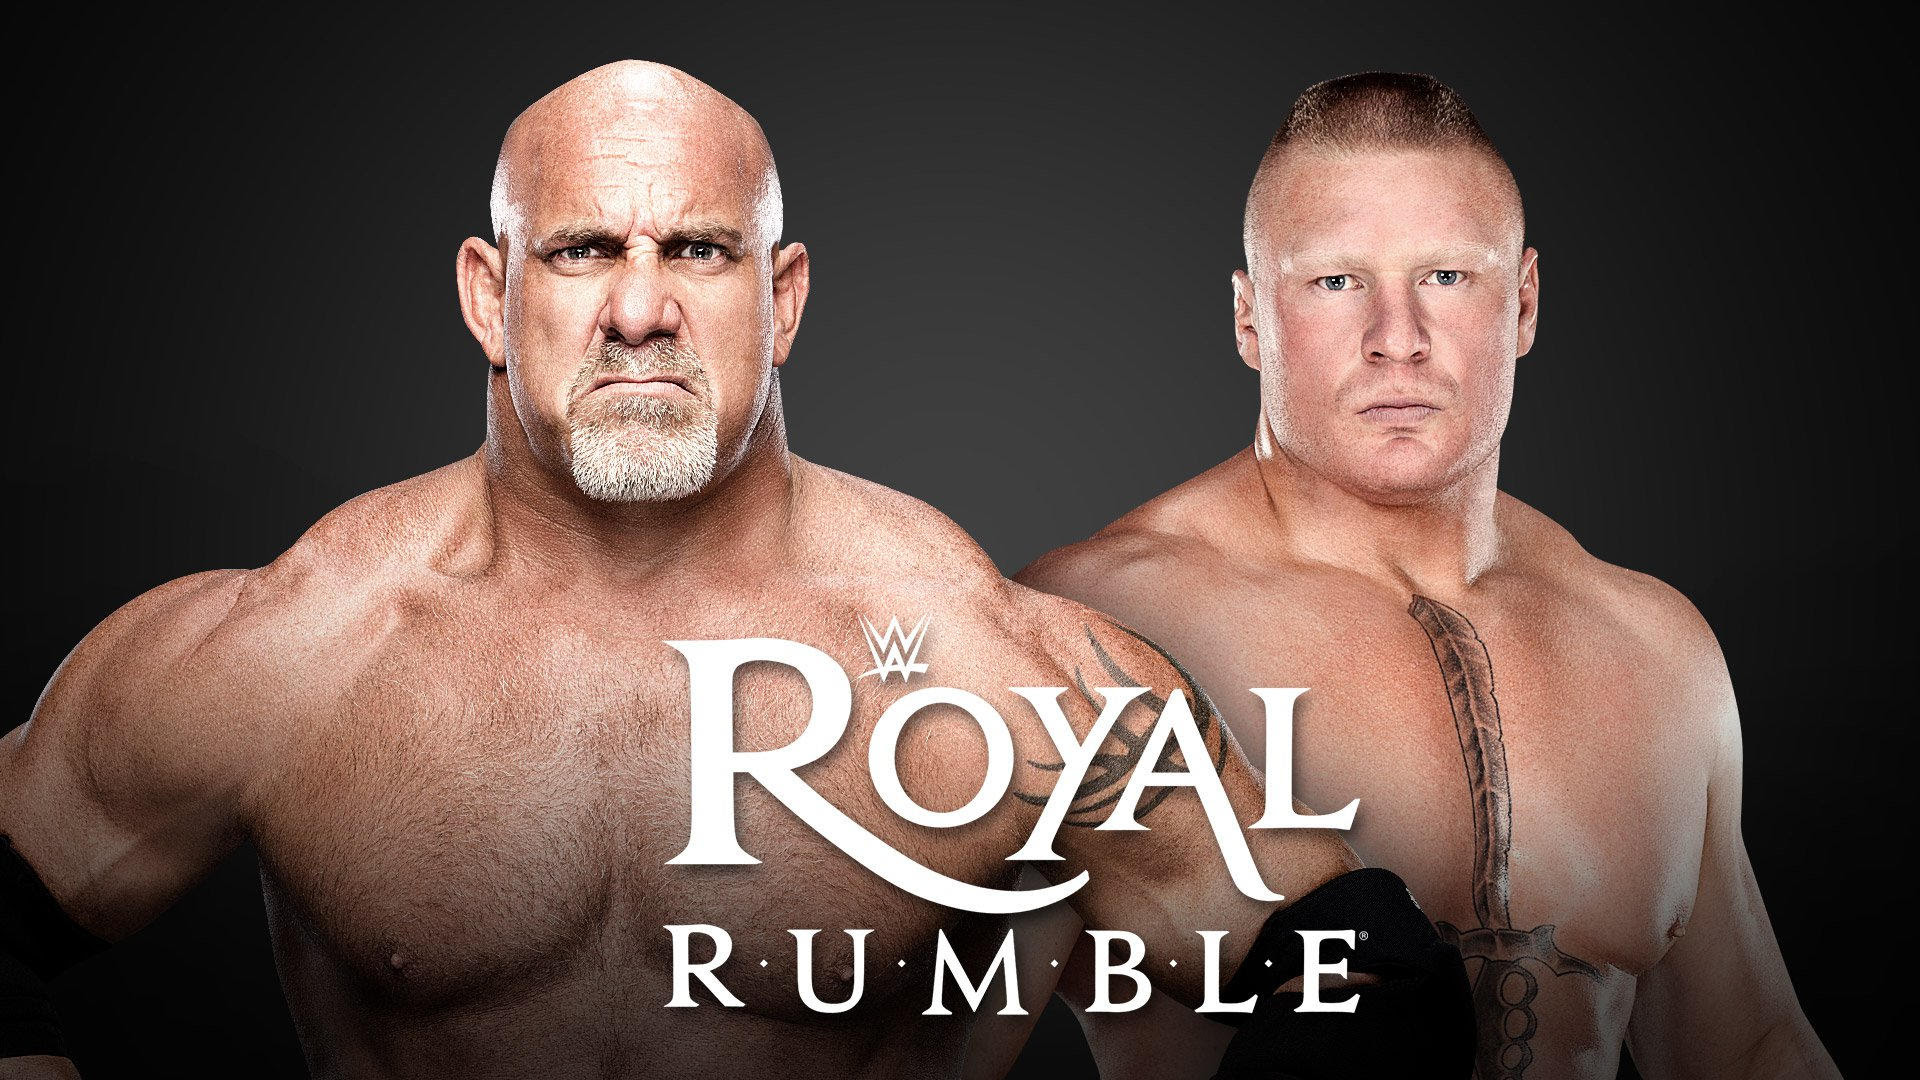 Rumble Match